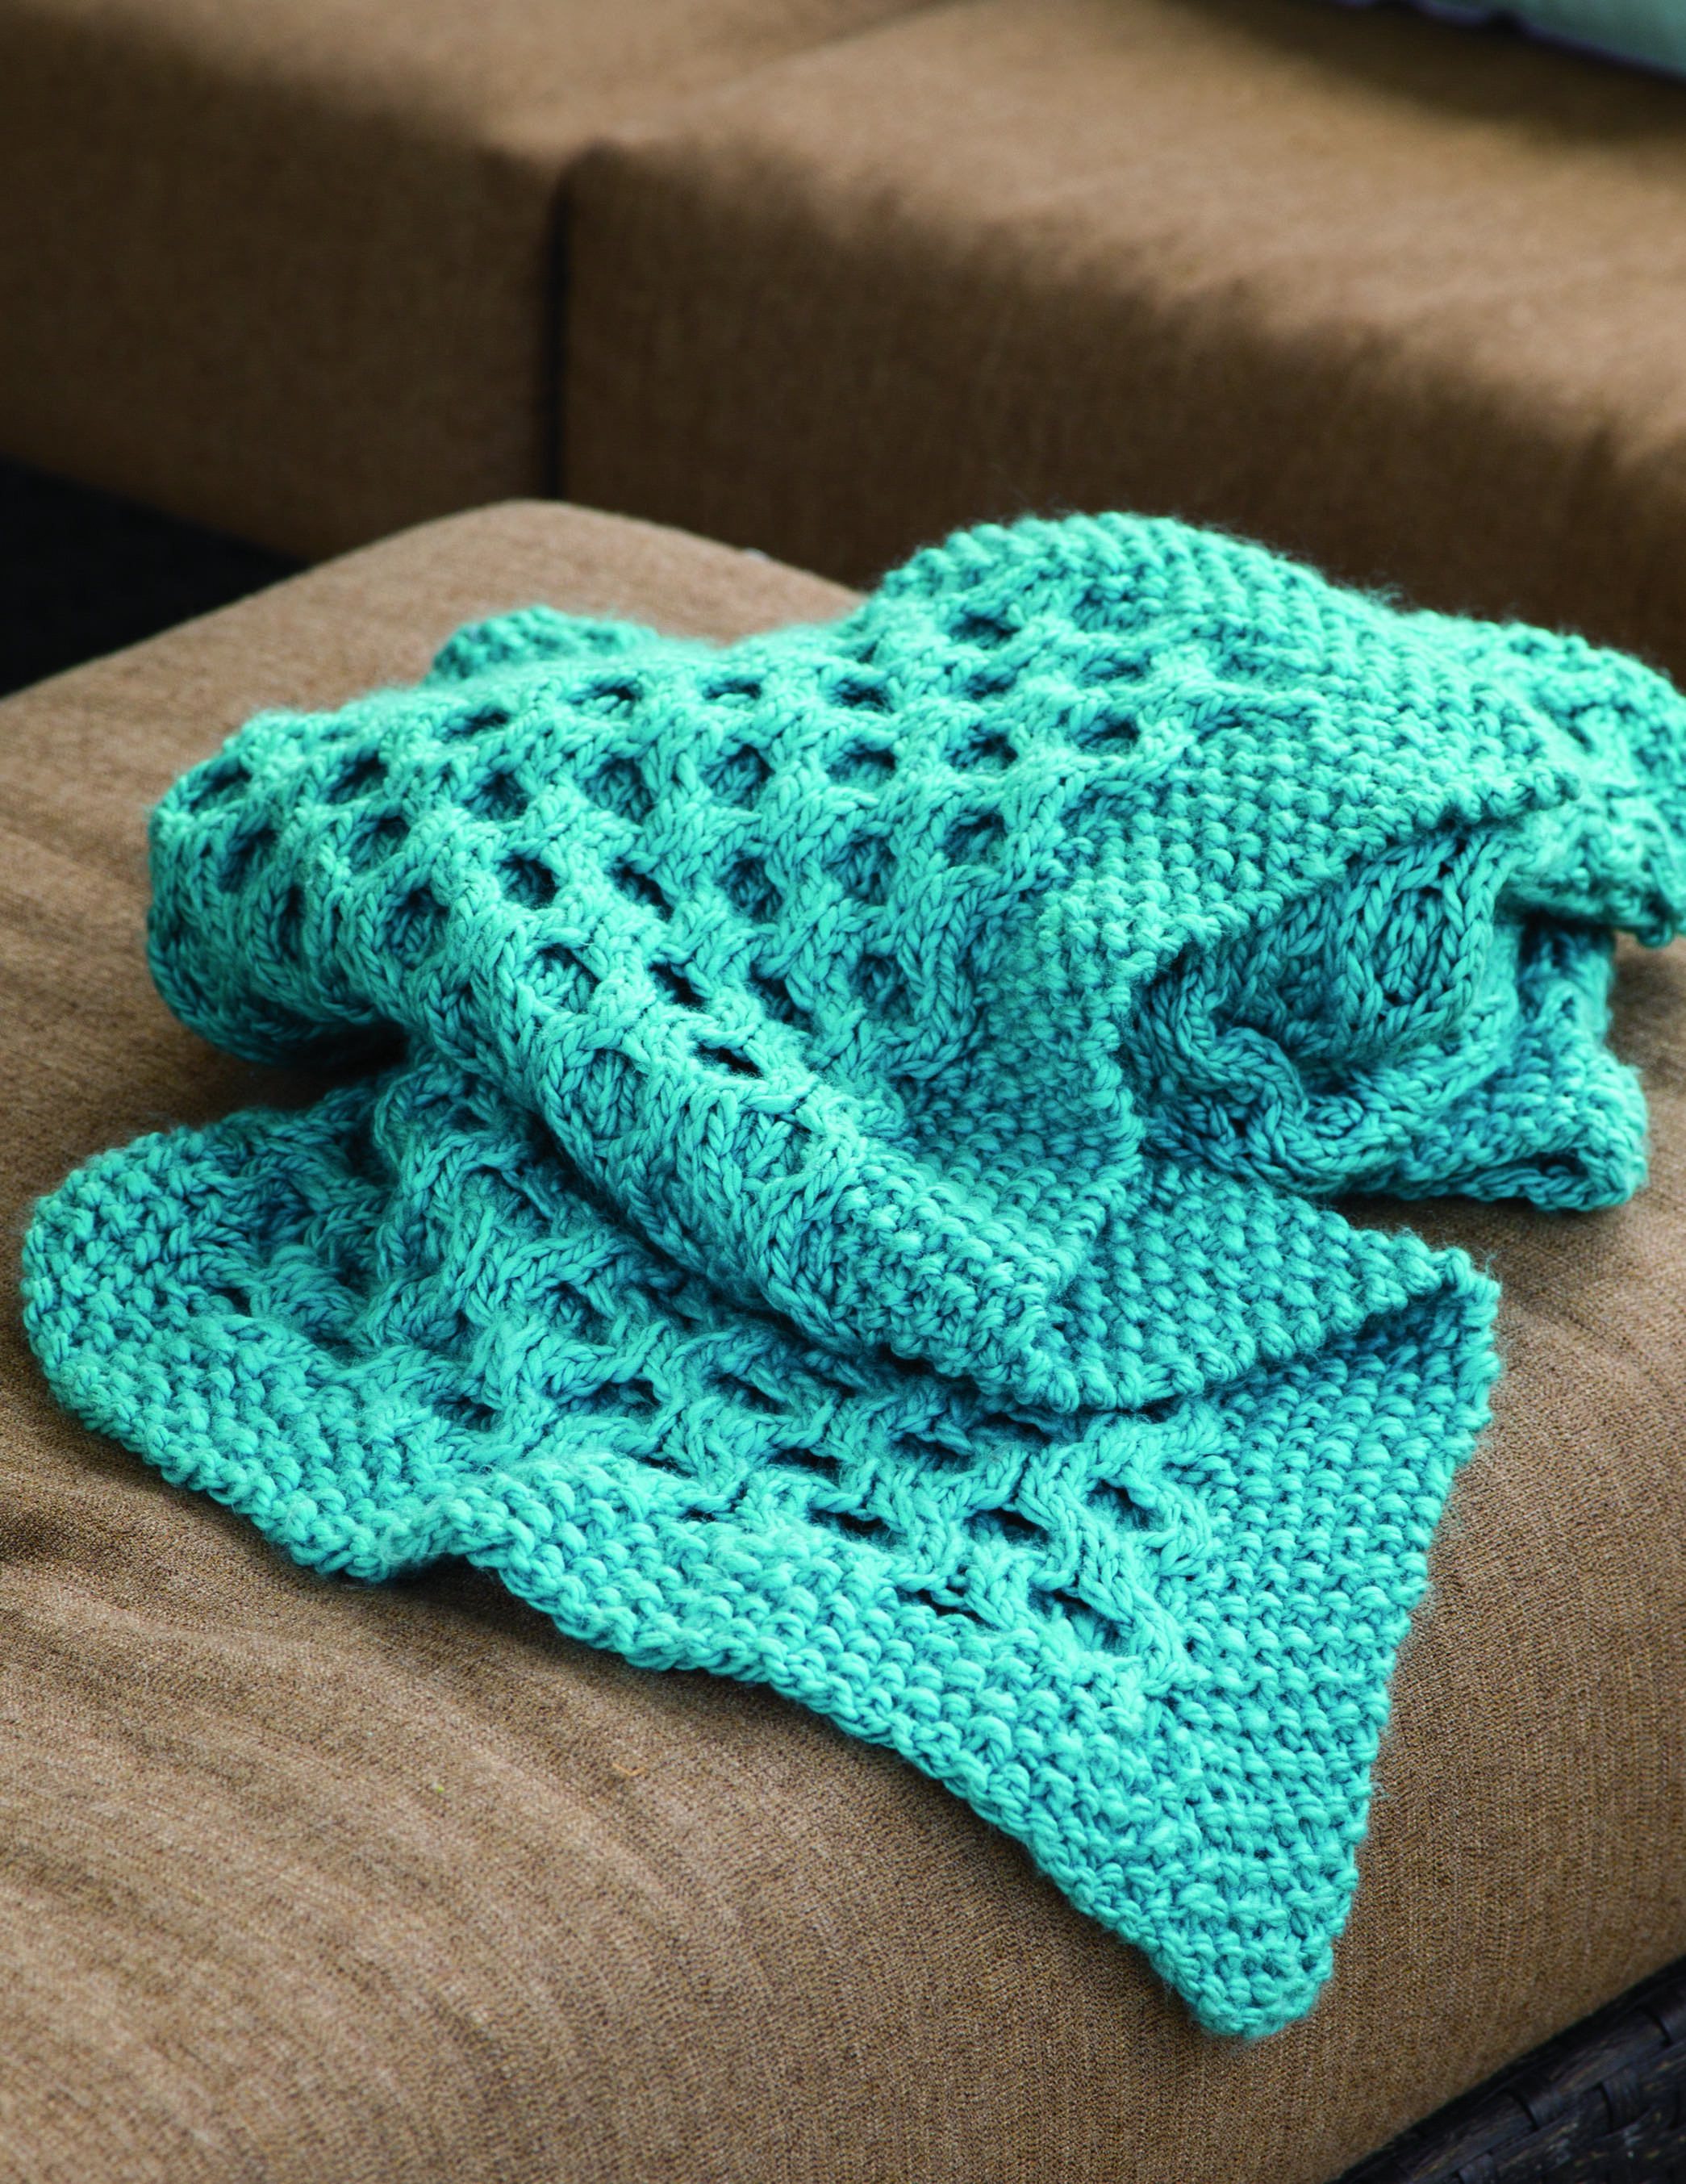 Knitted Honeycomb Throw from Chunky Knits